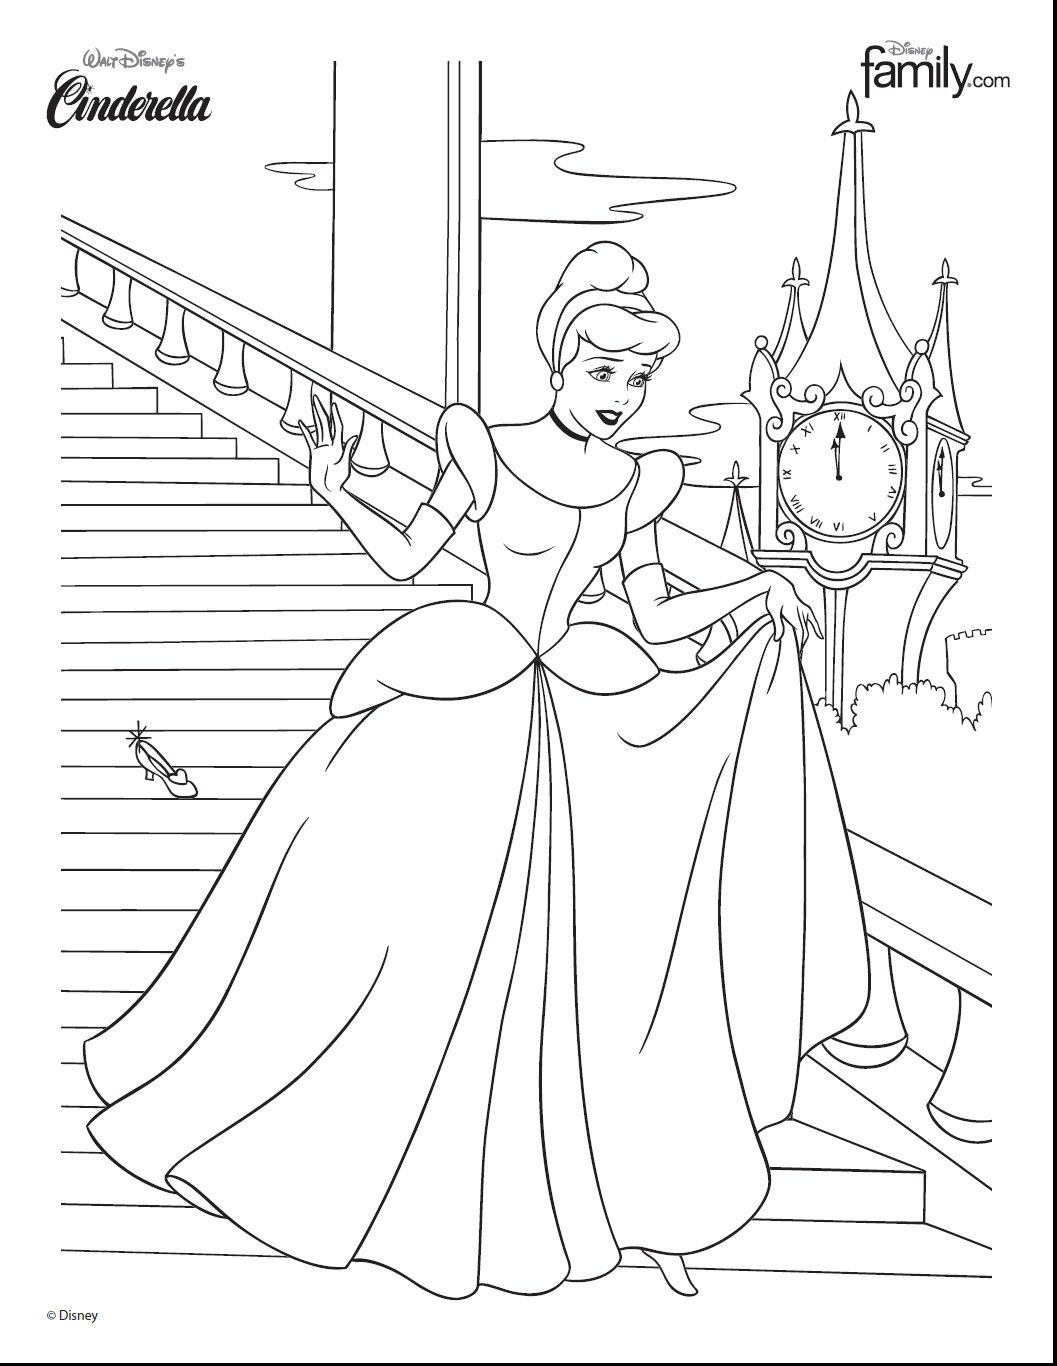 Disney Princess Cinderella at the Ball colouring in page download ...